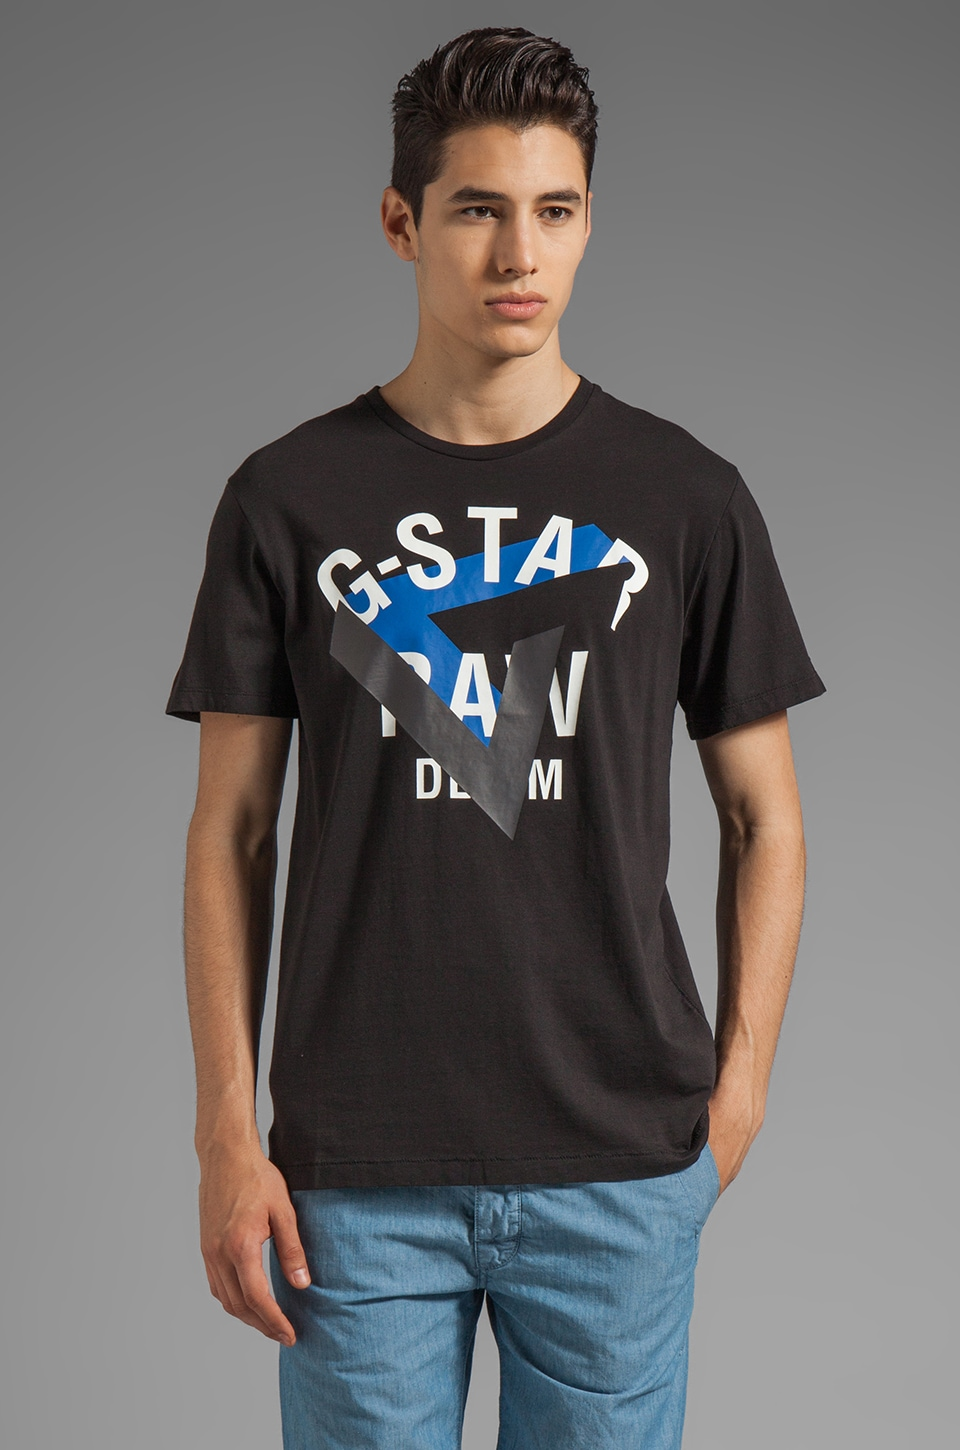 G-Star Esther Short Sleeve Tee in Black